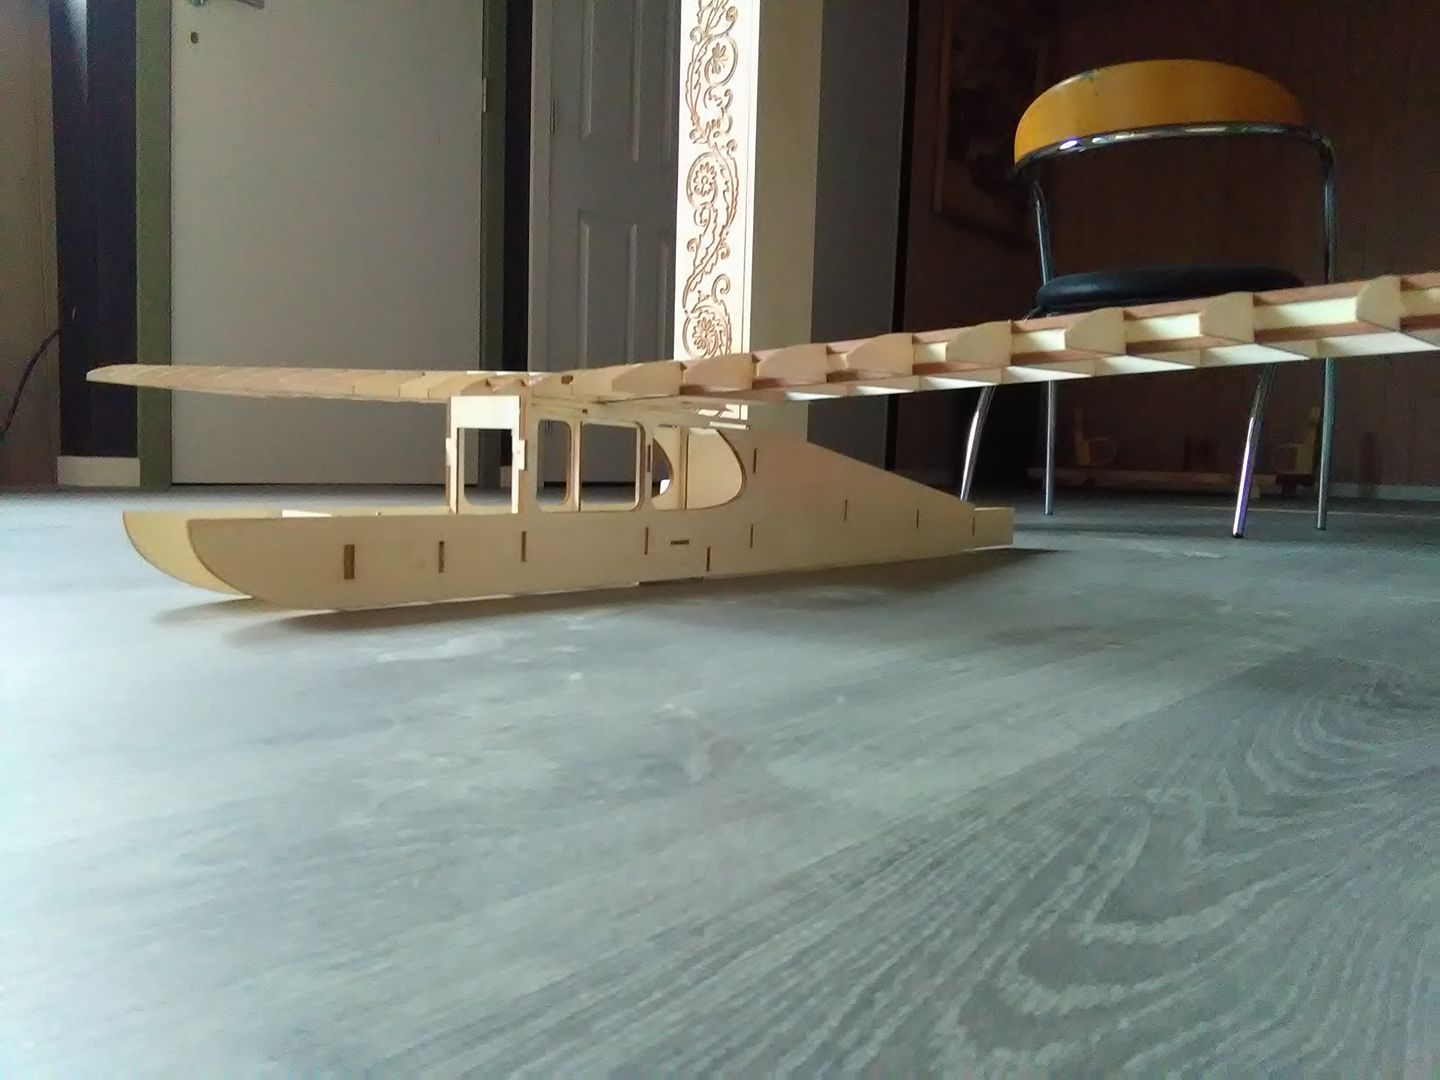 Westerly - Welcome at RC-Europe, manufaturer of Wooden Lasercut RC planes